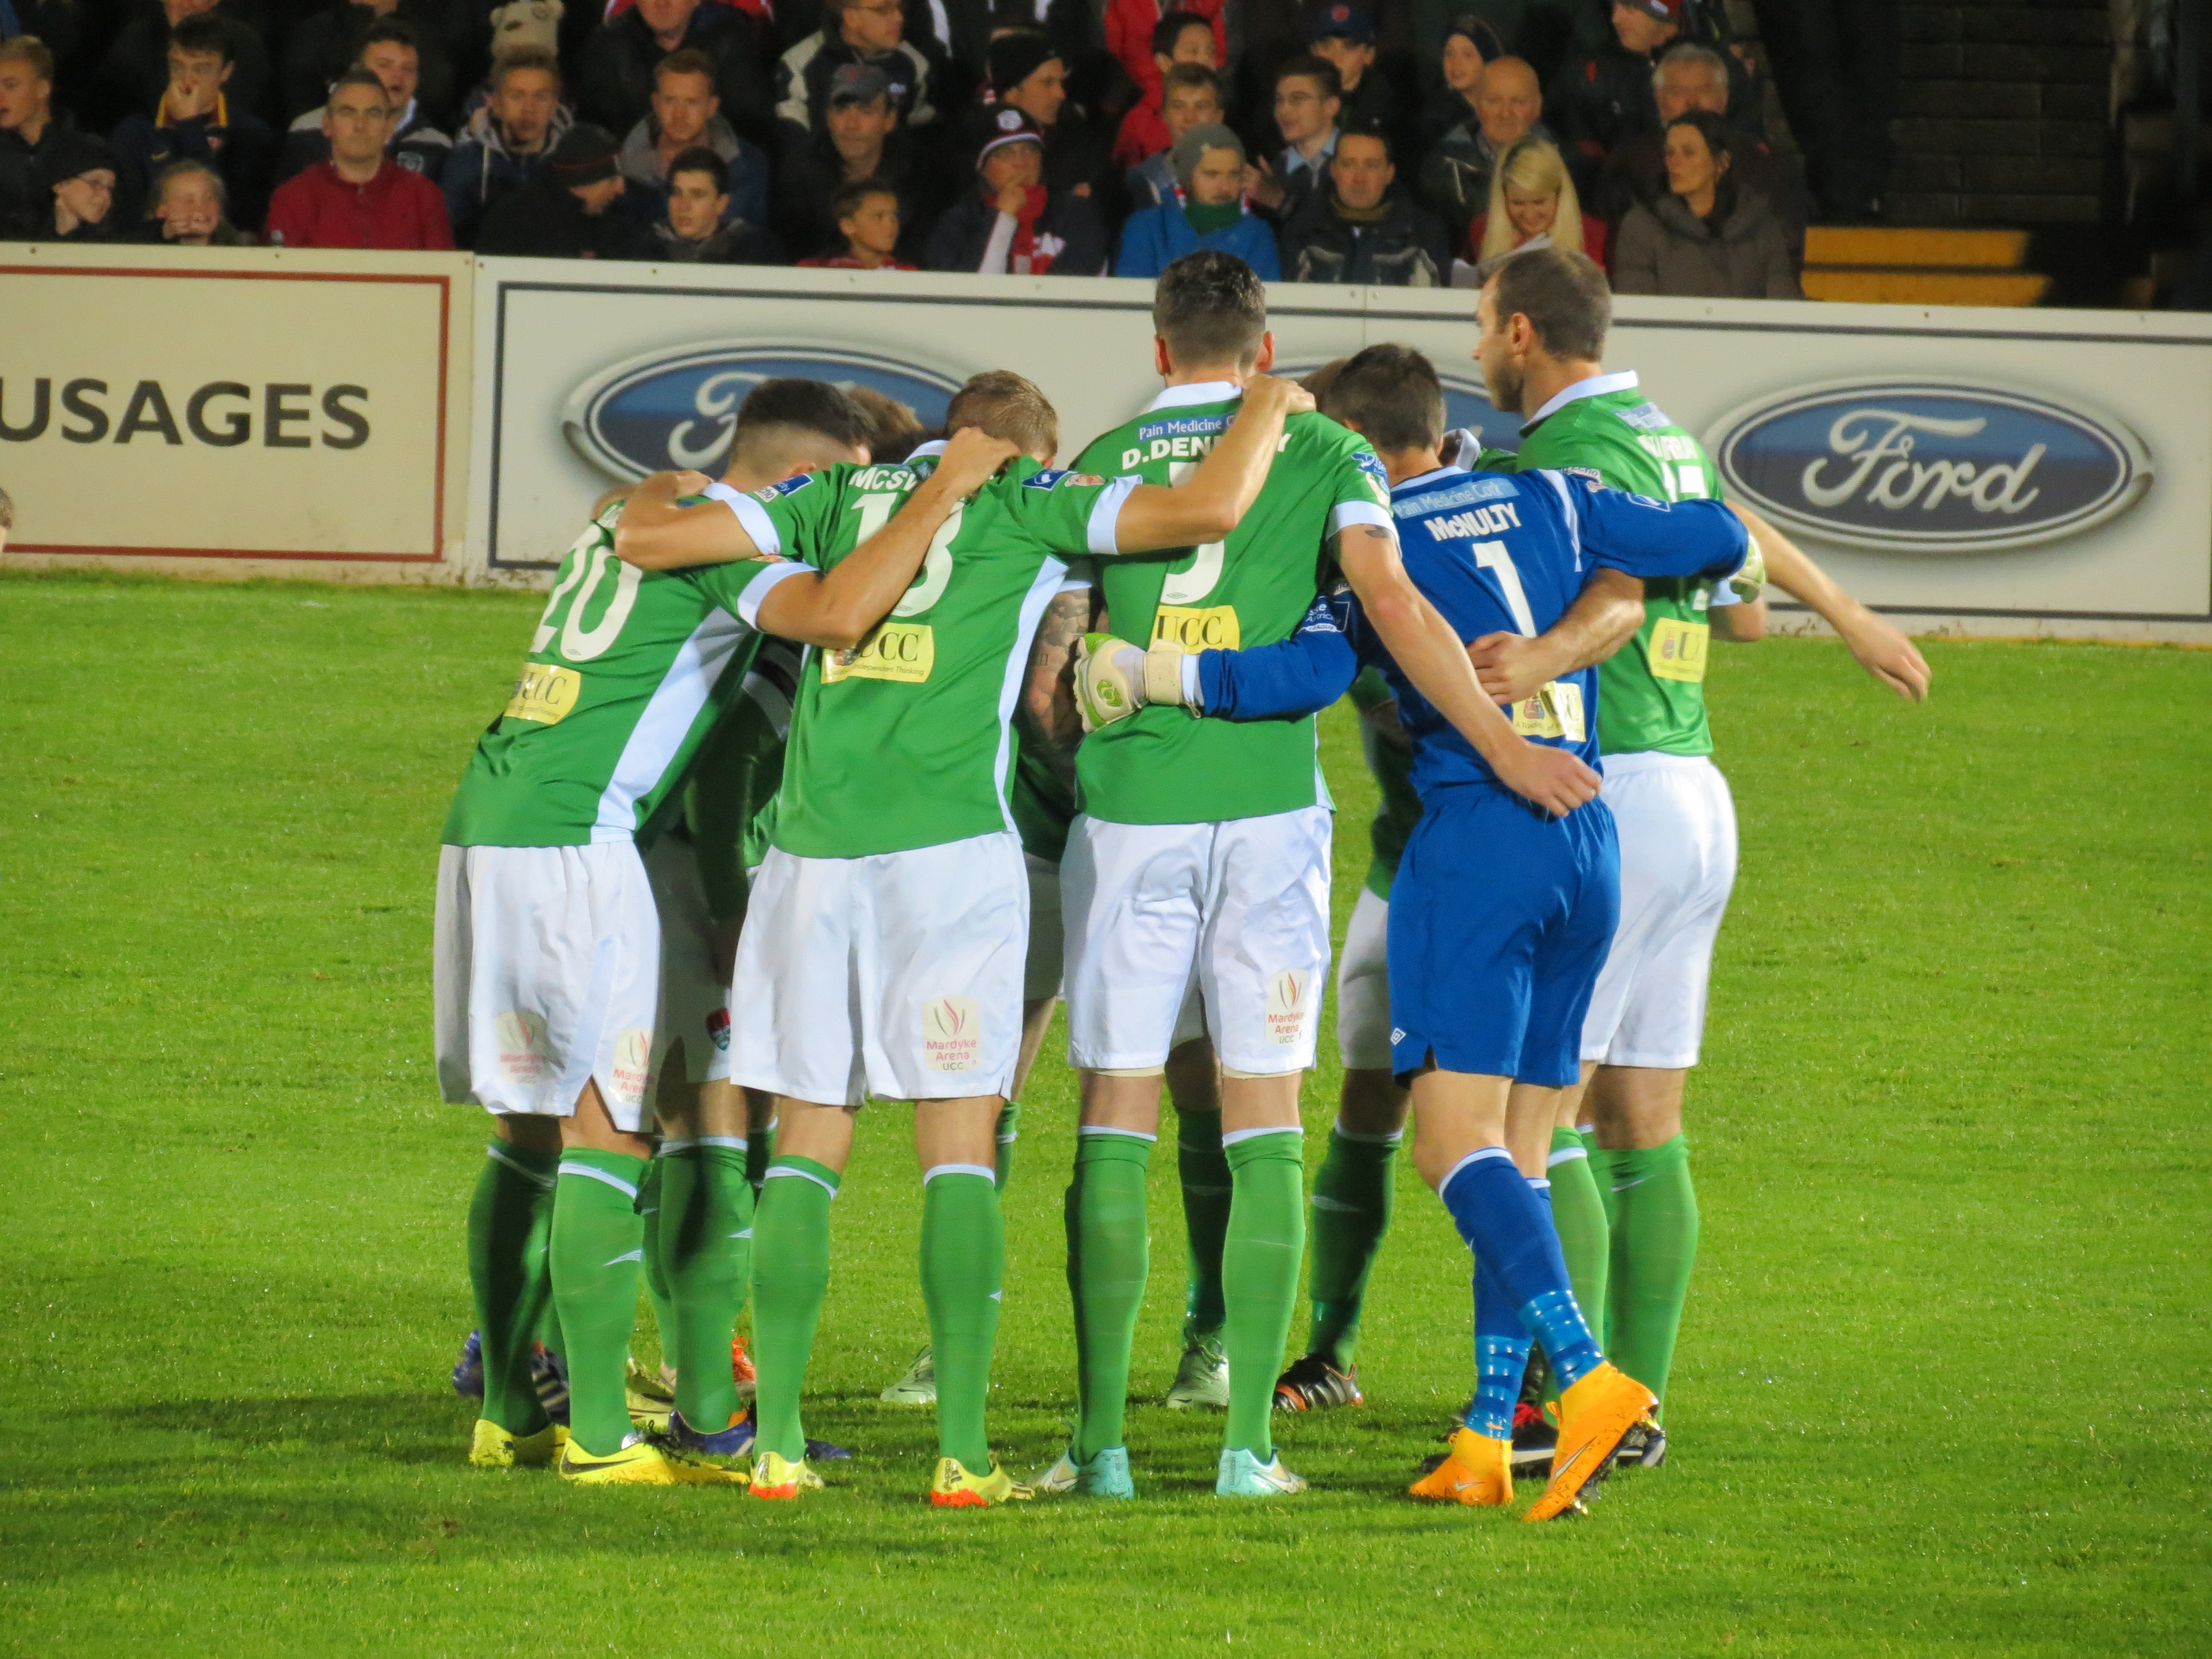 Cork City FC, John Caulfield's Rebel Army in a team huddle before their League of Ireland game against Bohemians FC at Turners Cross on October 17th 2014